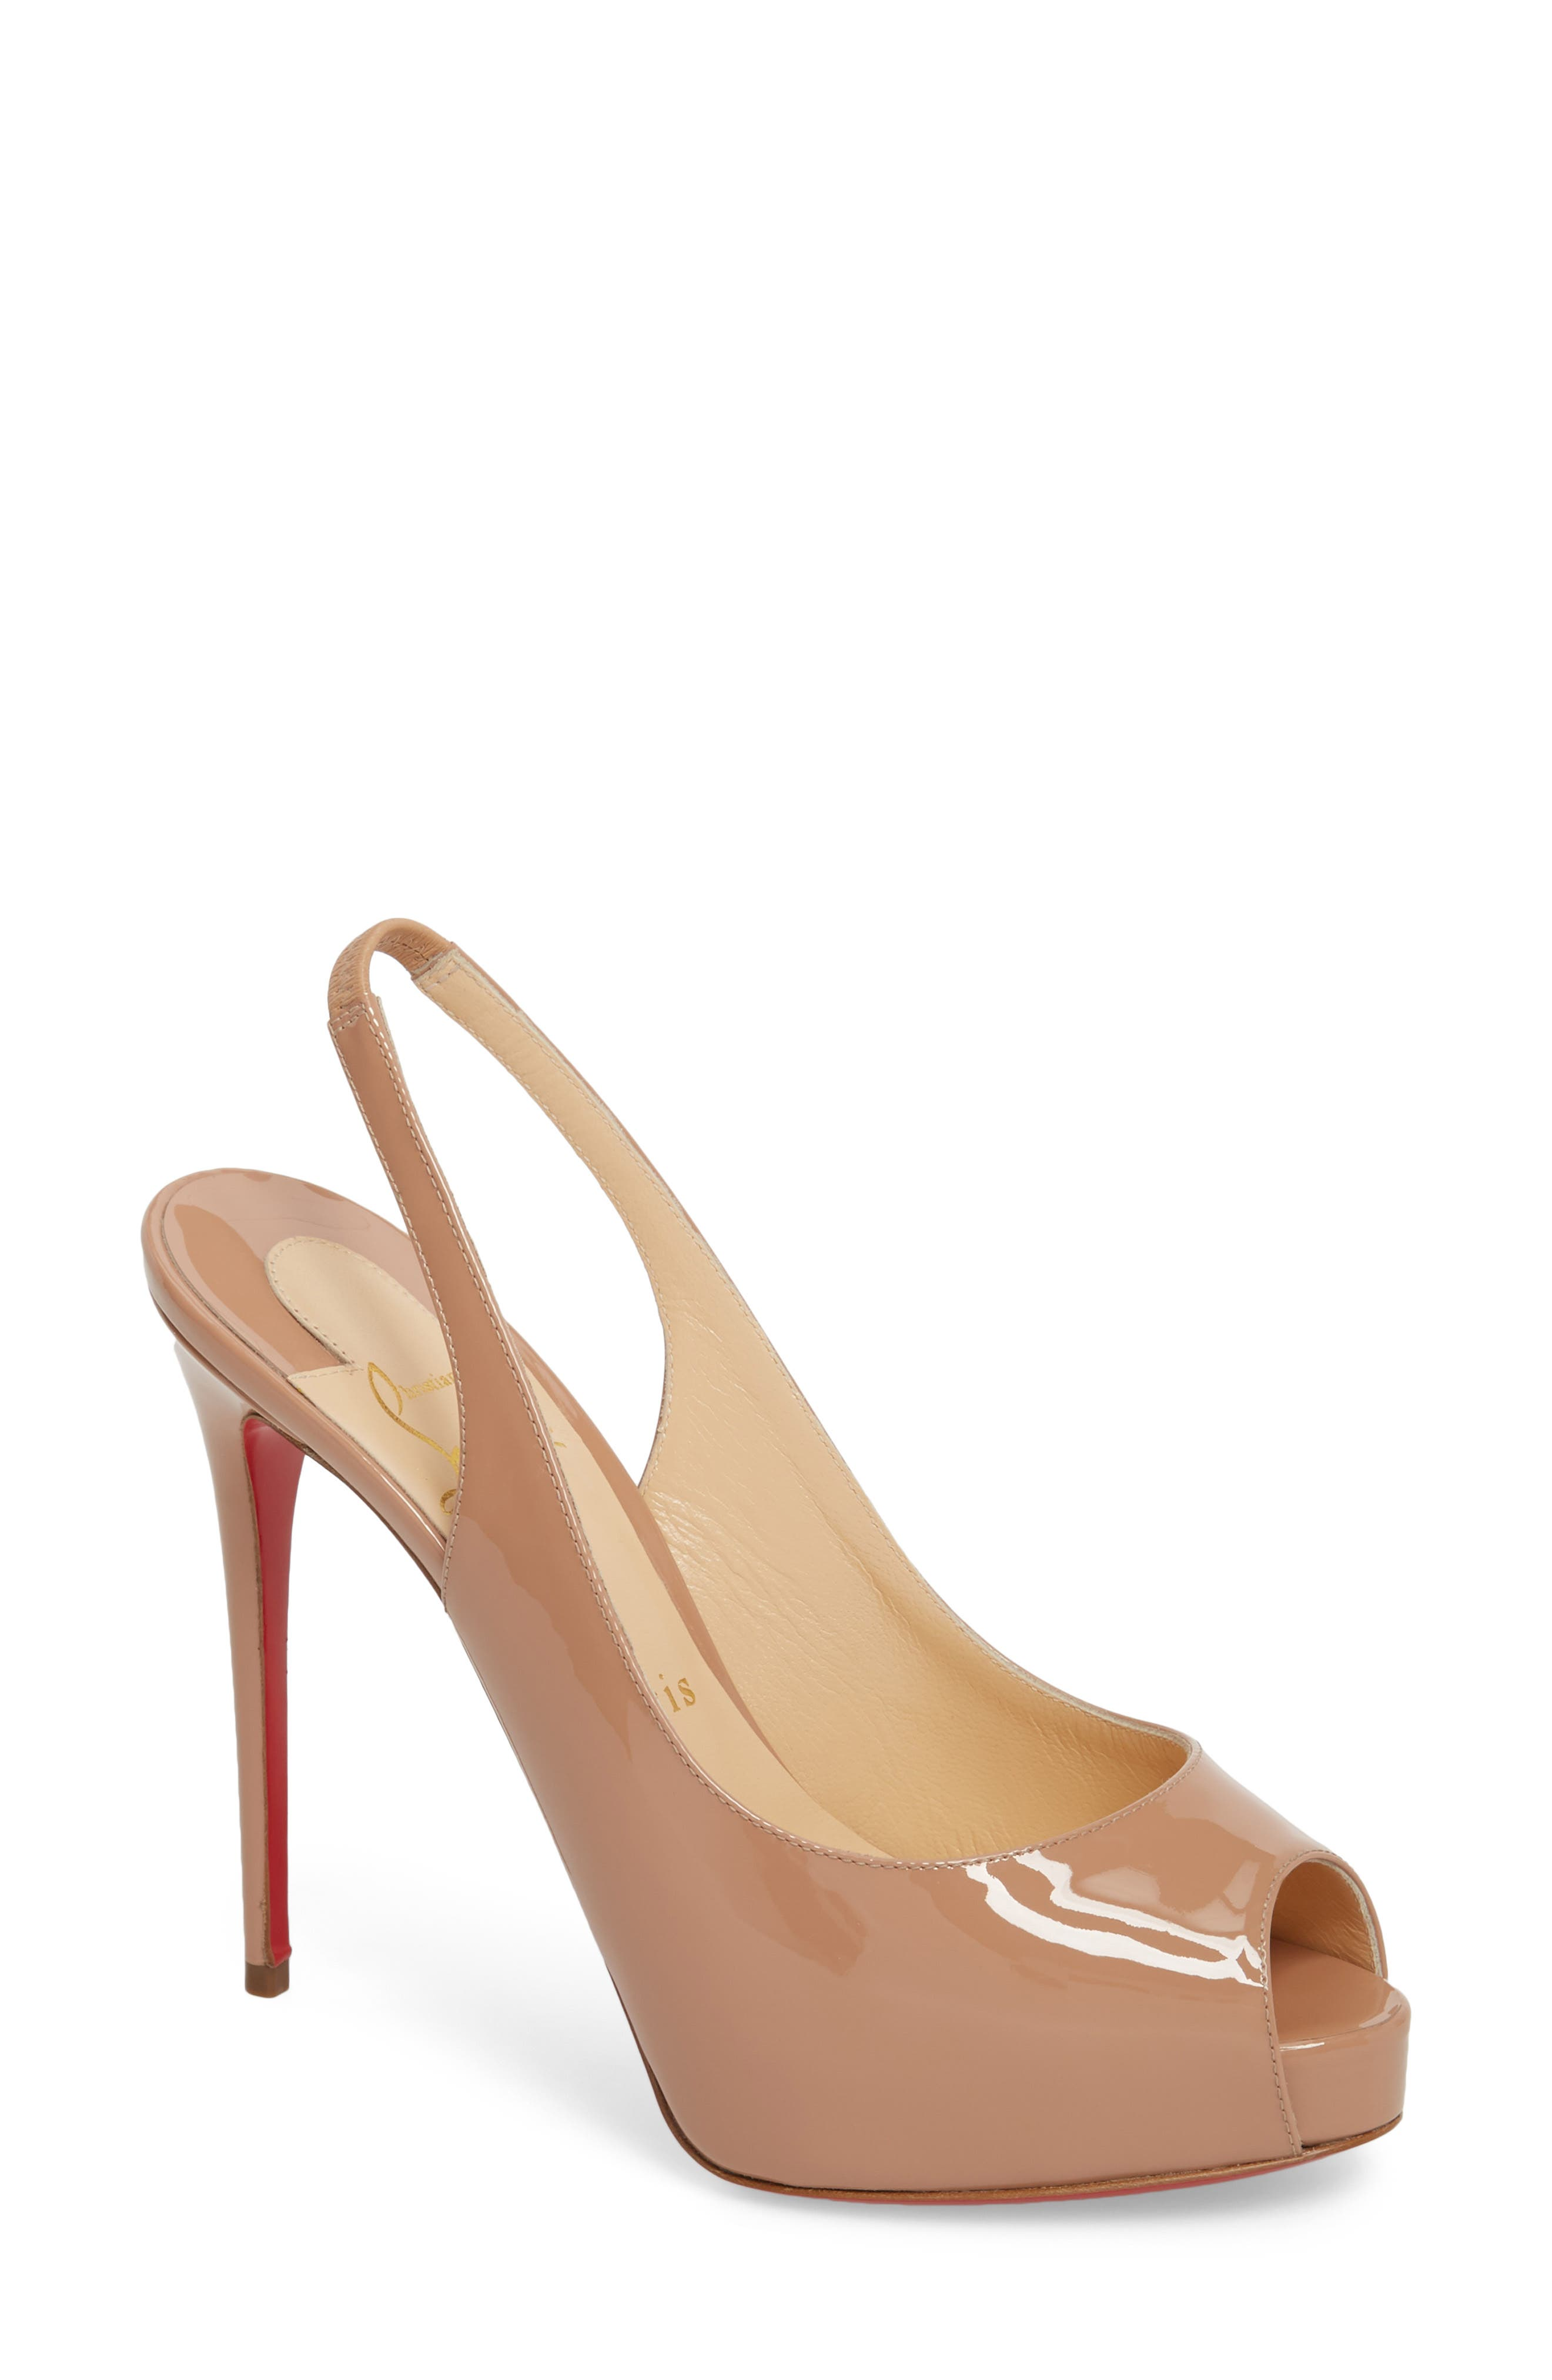 CHRISTIAN LOUBOUTIN,                             Private Number Peep Toe Pump,                             Main thumbnail 1, color,                             NUDE